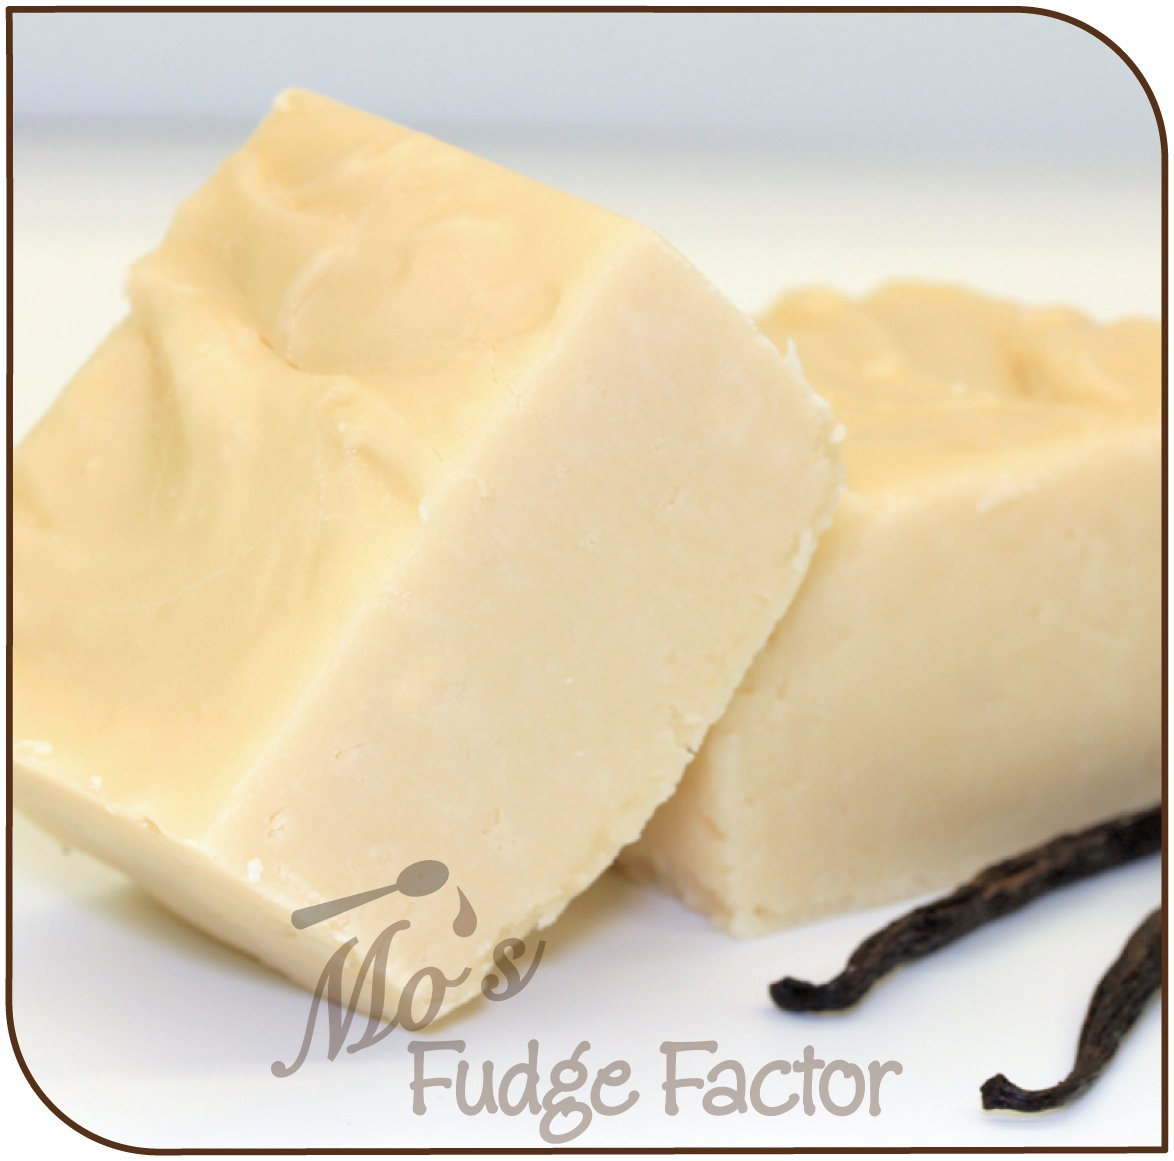 Mo's Fudge Factor, Vanilla Fudge 2 Pound